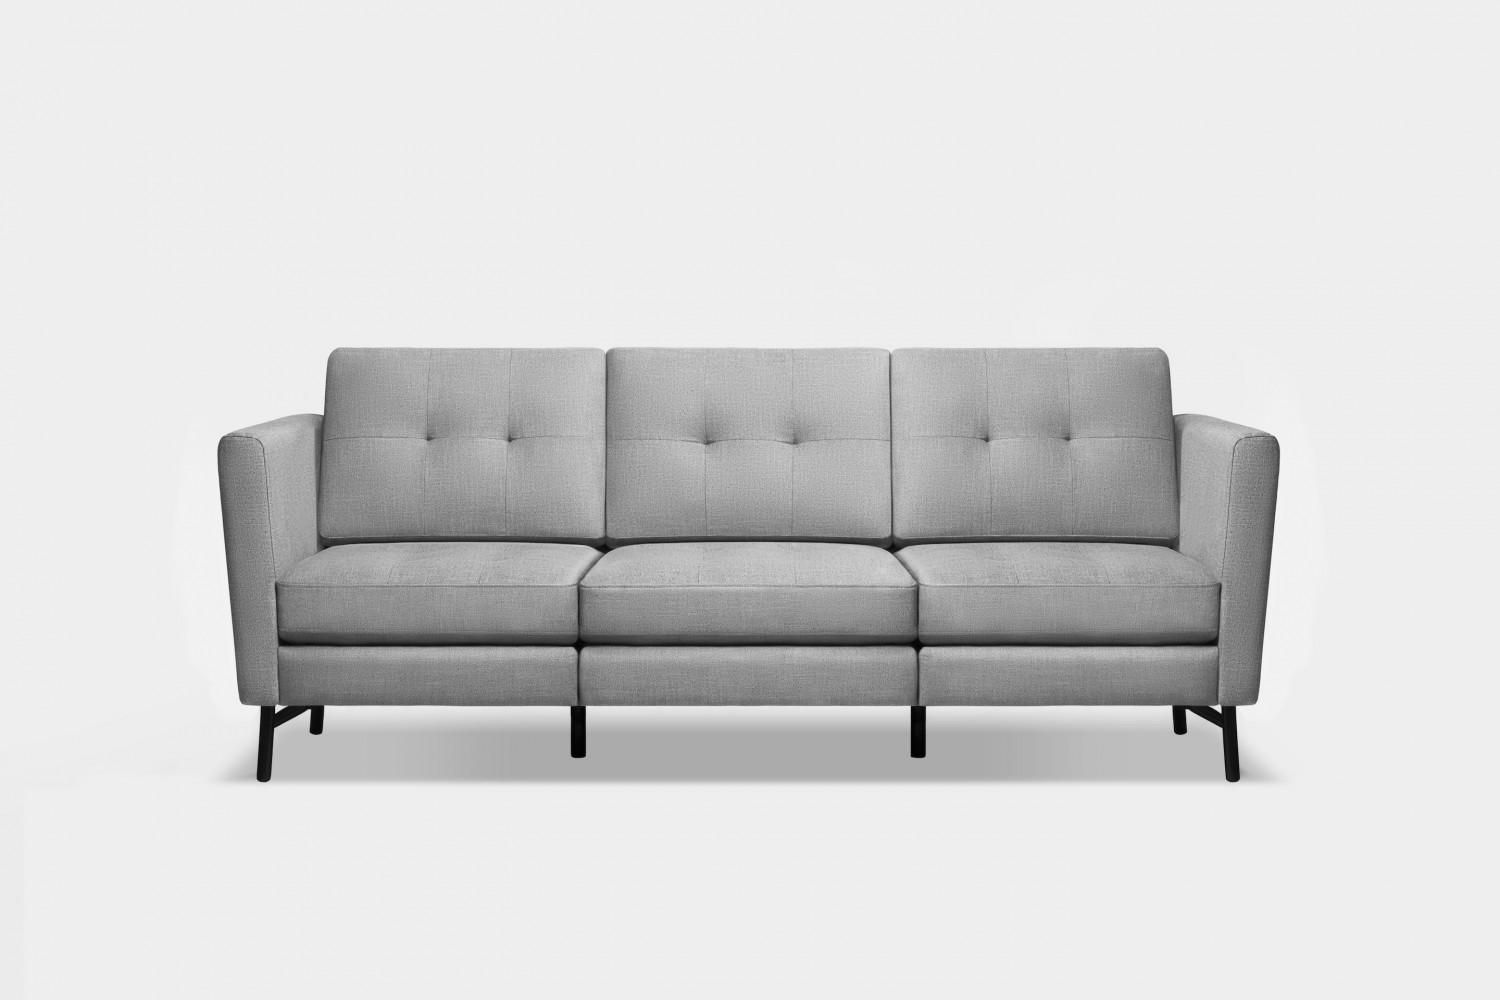 Founded By A Pair Of Wharton Grads This Brand Erts That It Has Reinvented The Luxury Couch According To Company S Website They Ve Managed